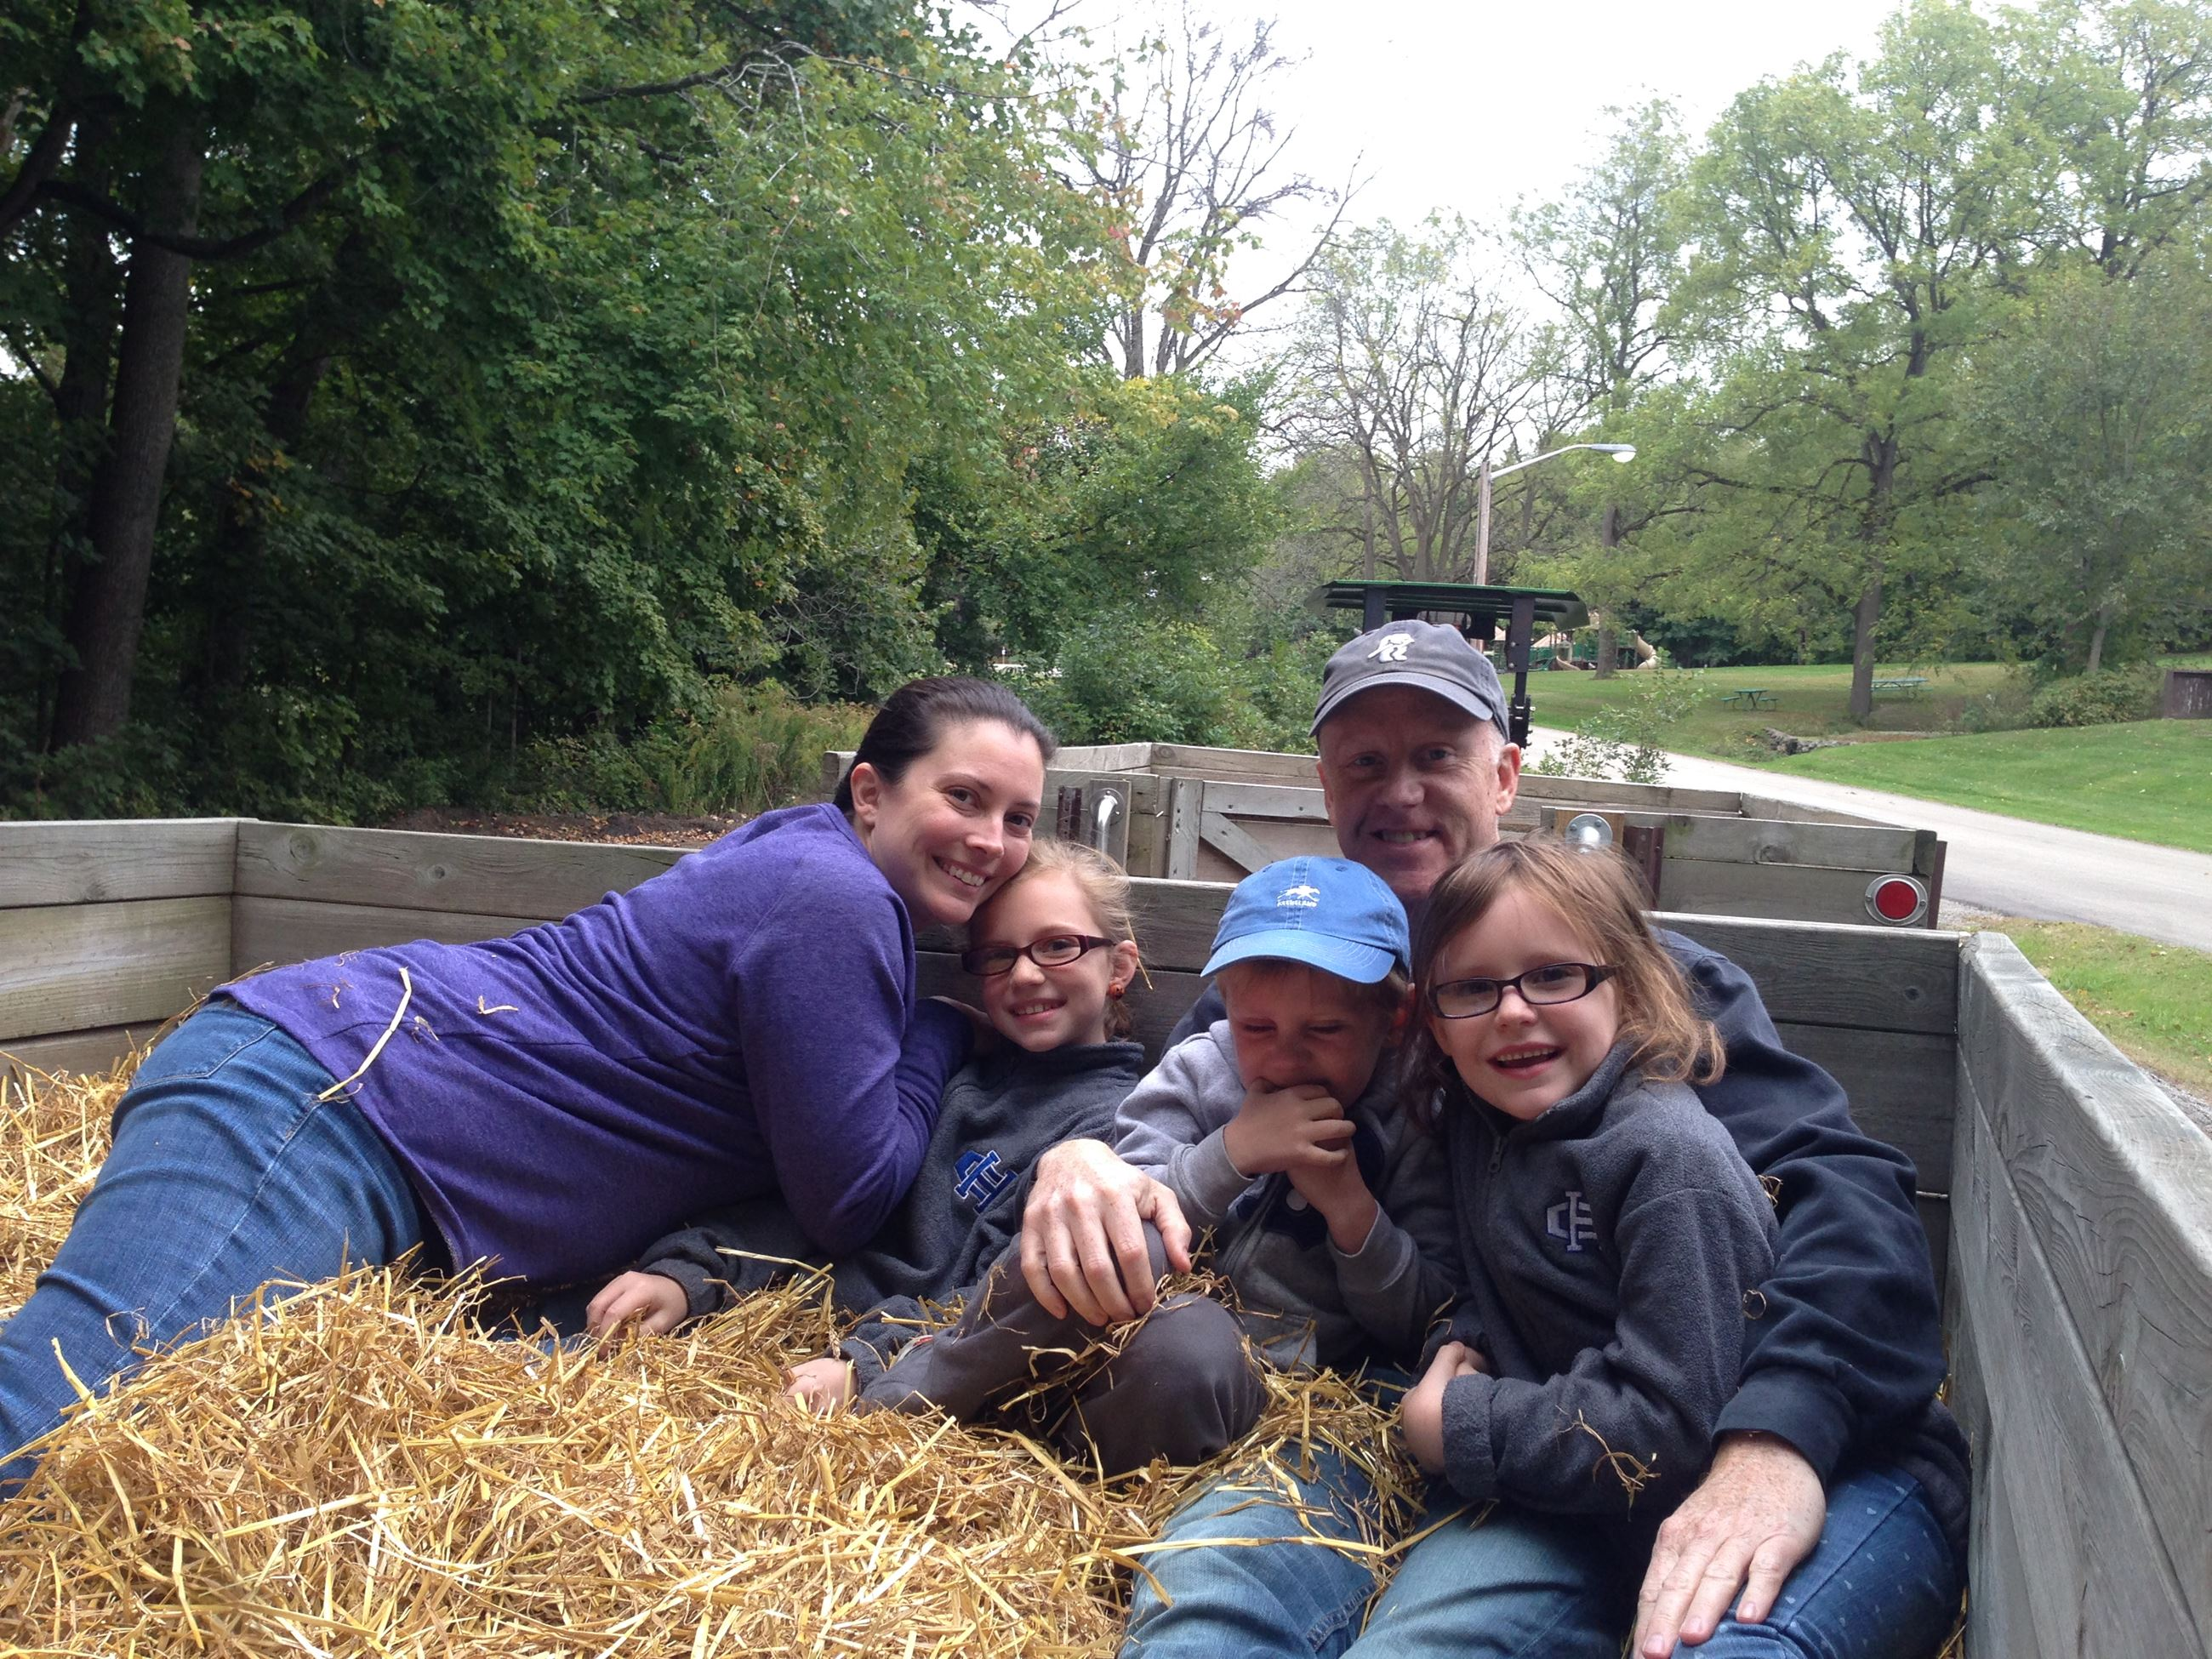 fall hayride at Bendix Woods County Park